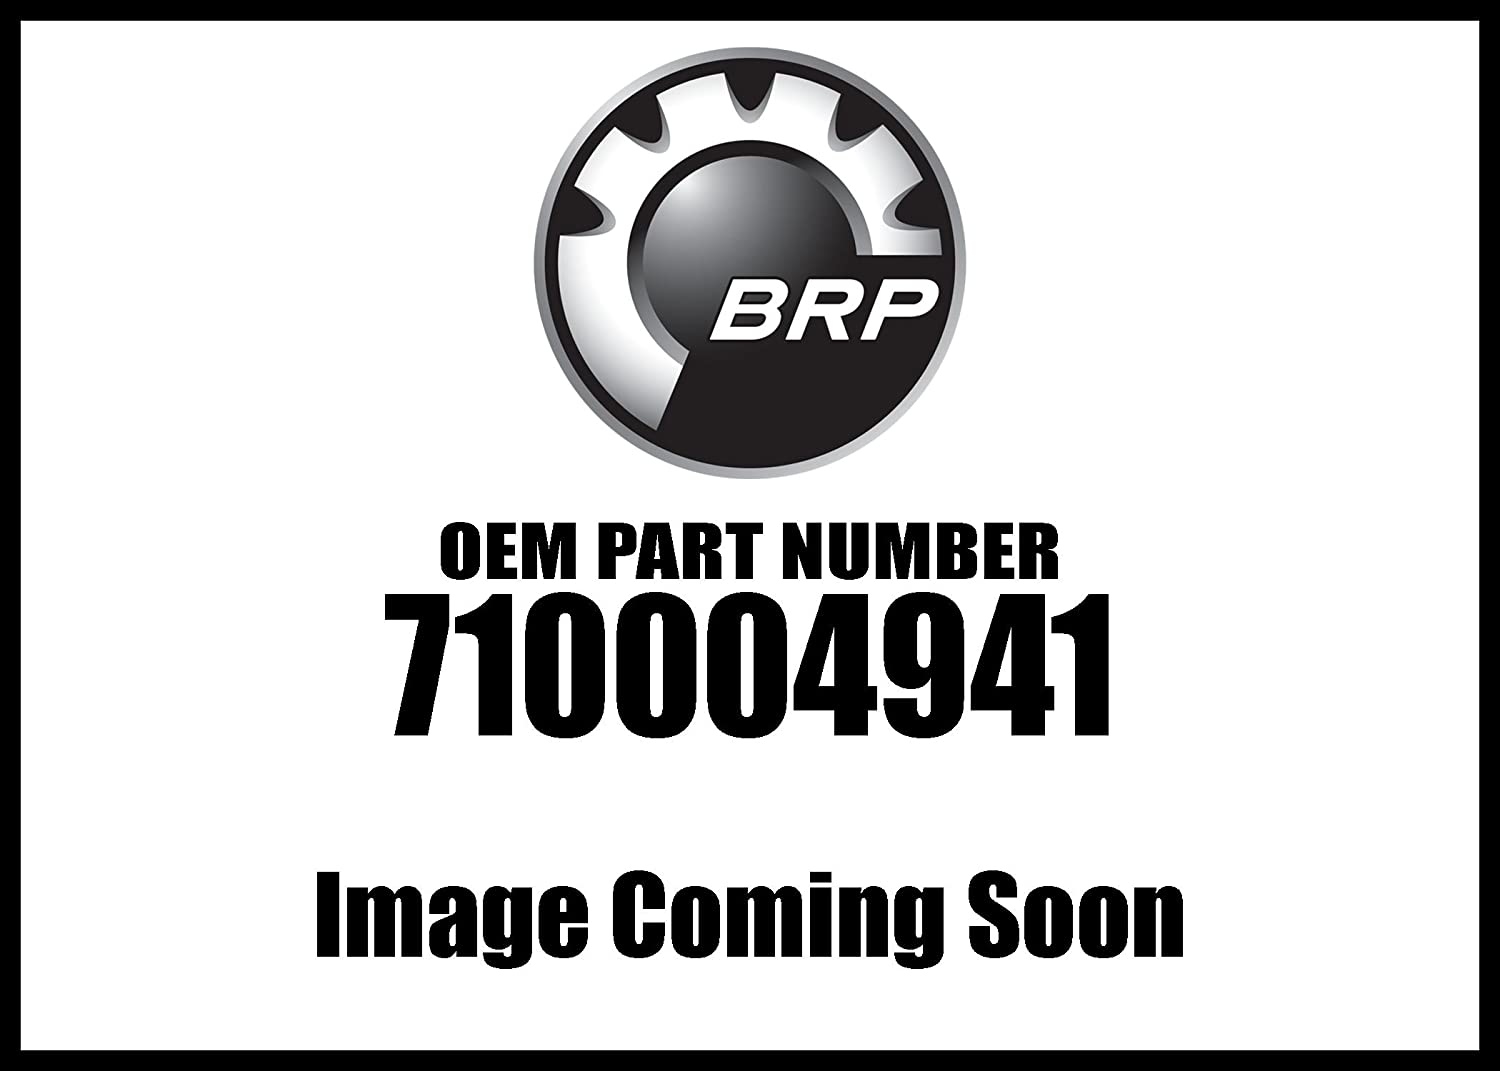 Can-Am 2016-2018 Defender Hd10 Defender Hd8 Interupteur Switch 710004941 New Oem BRP